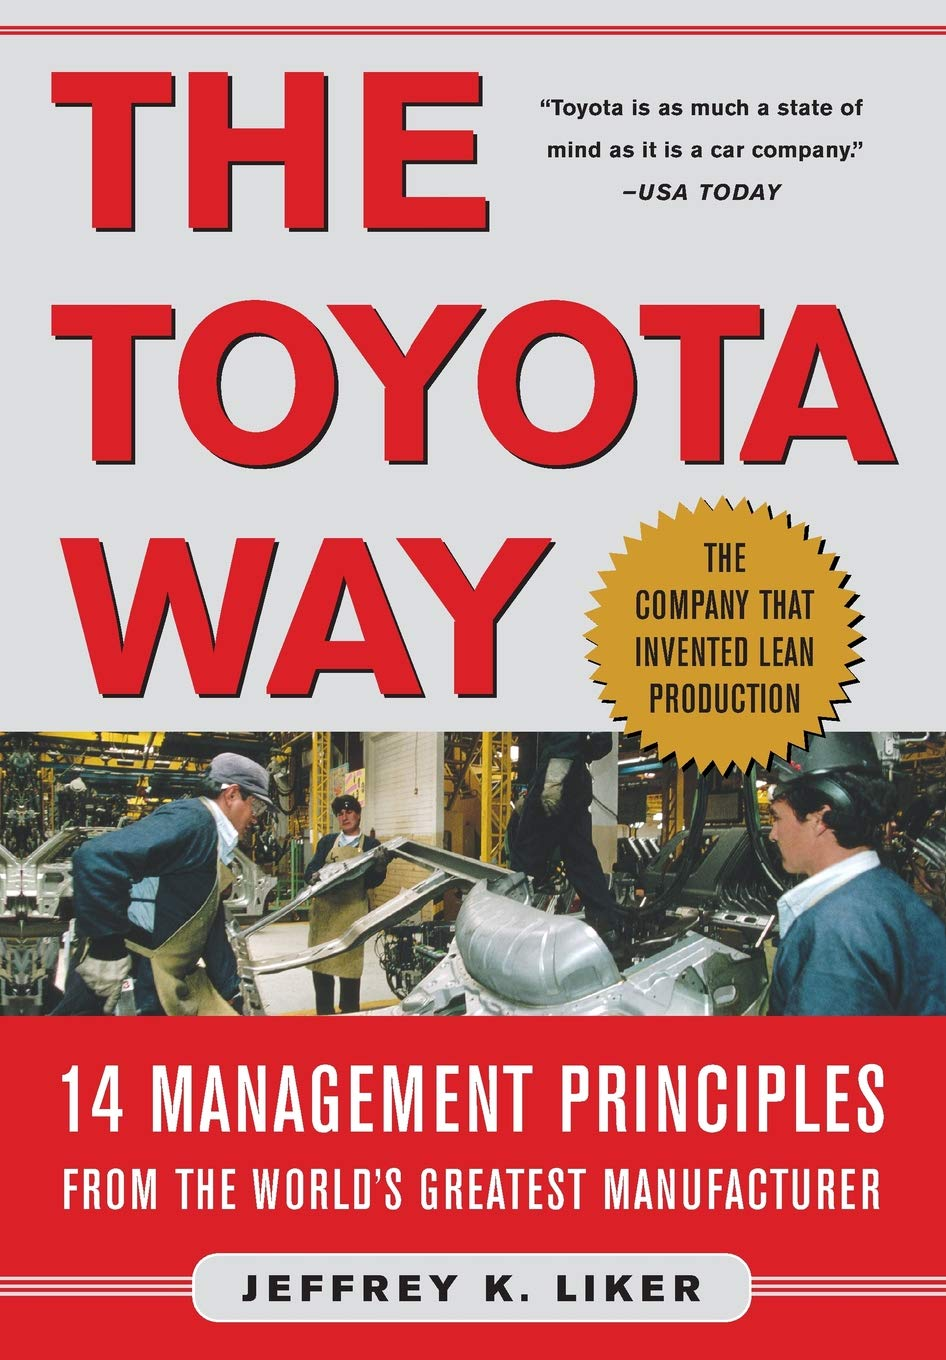 the Toyota way. 14 management principles from the world's greatest  manufacturer: Amazon.es: Liker, Jeffrey: Libros en idiomas extranjeros